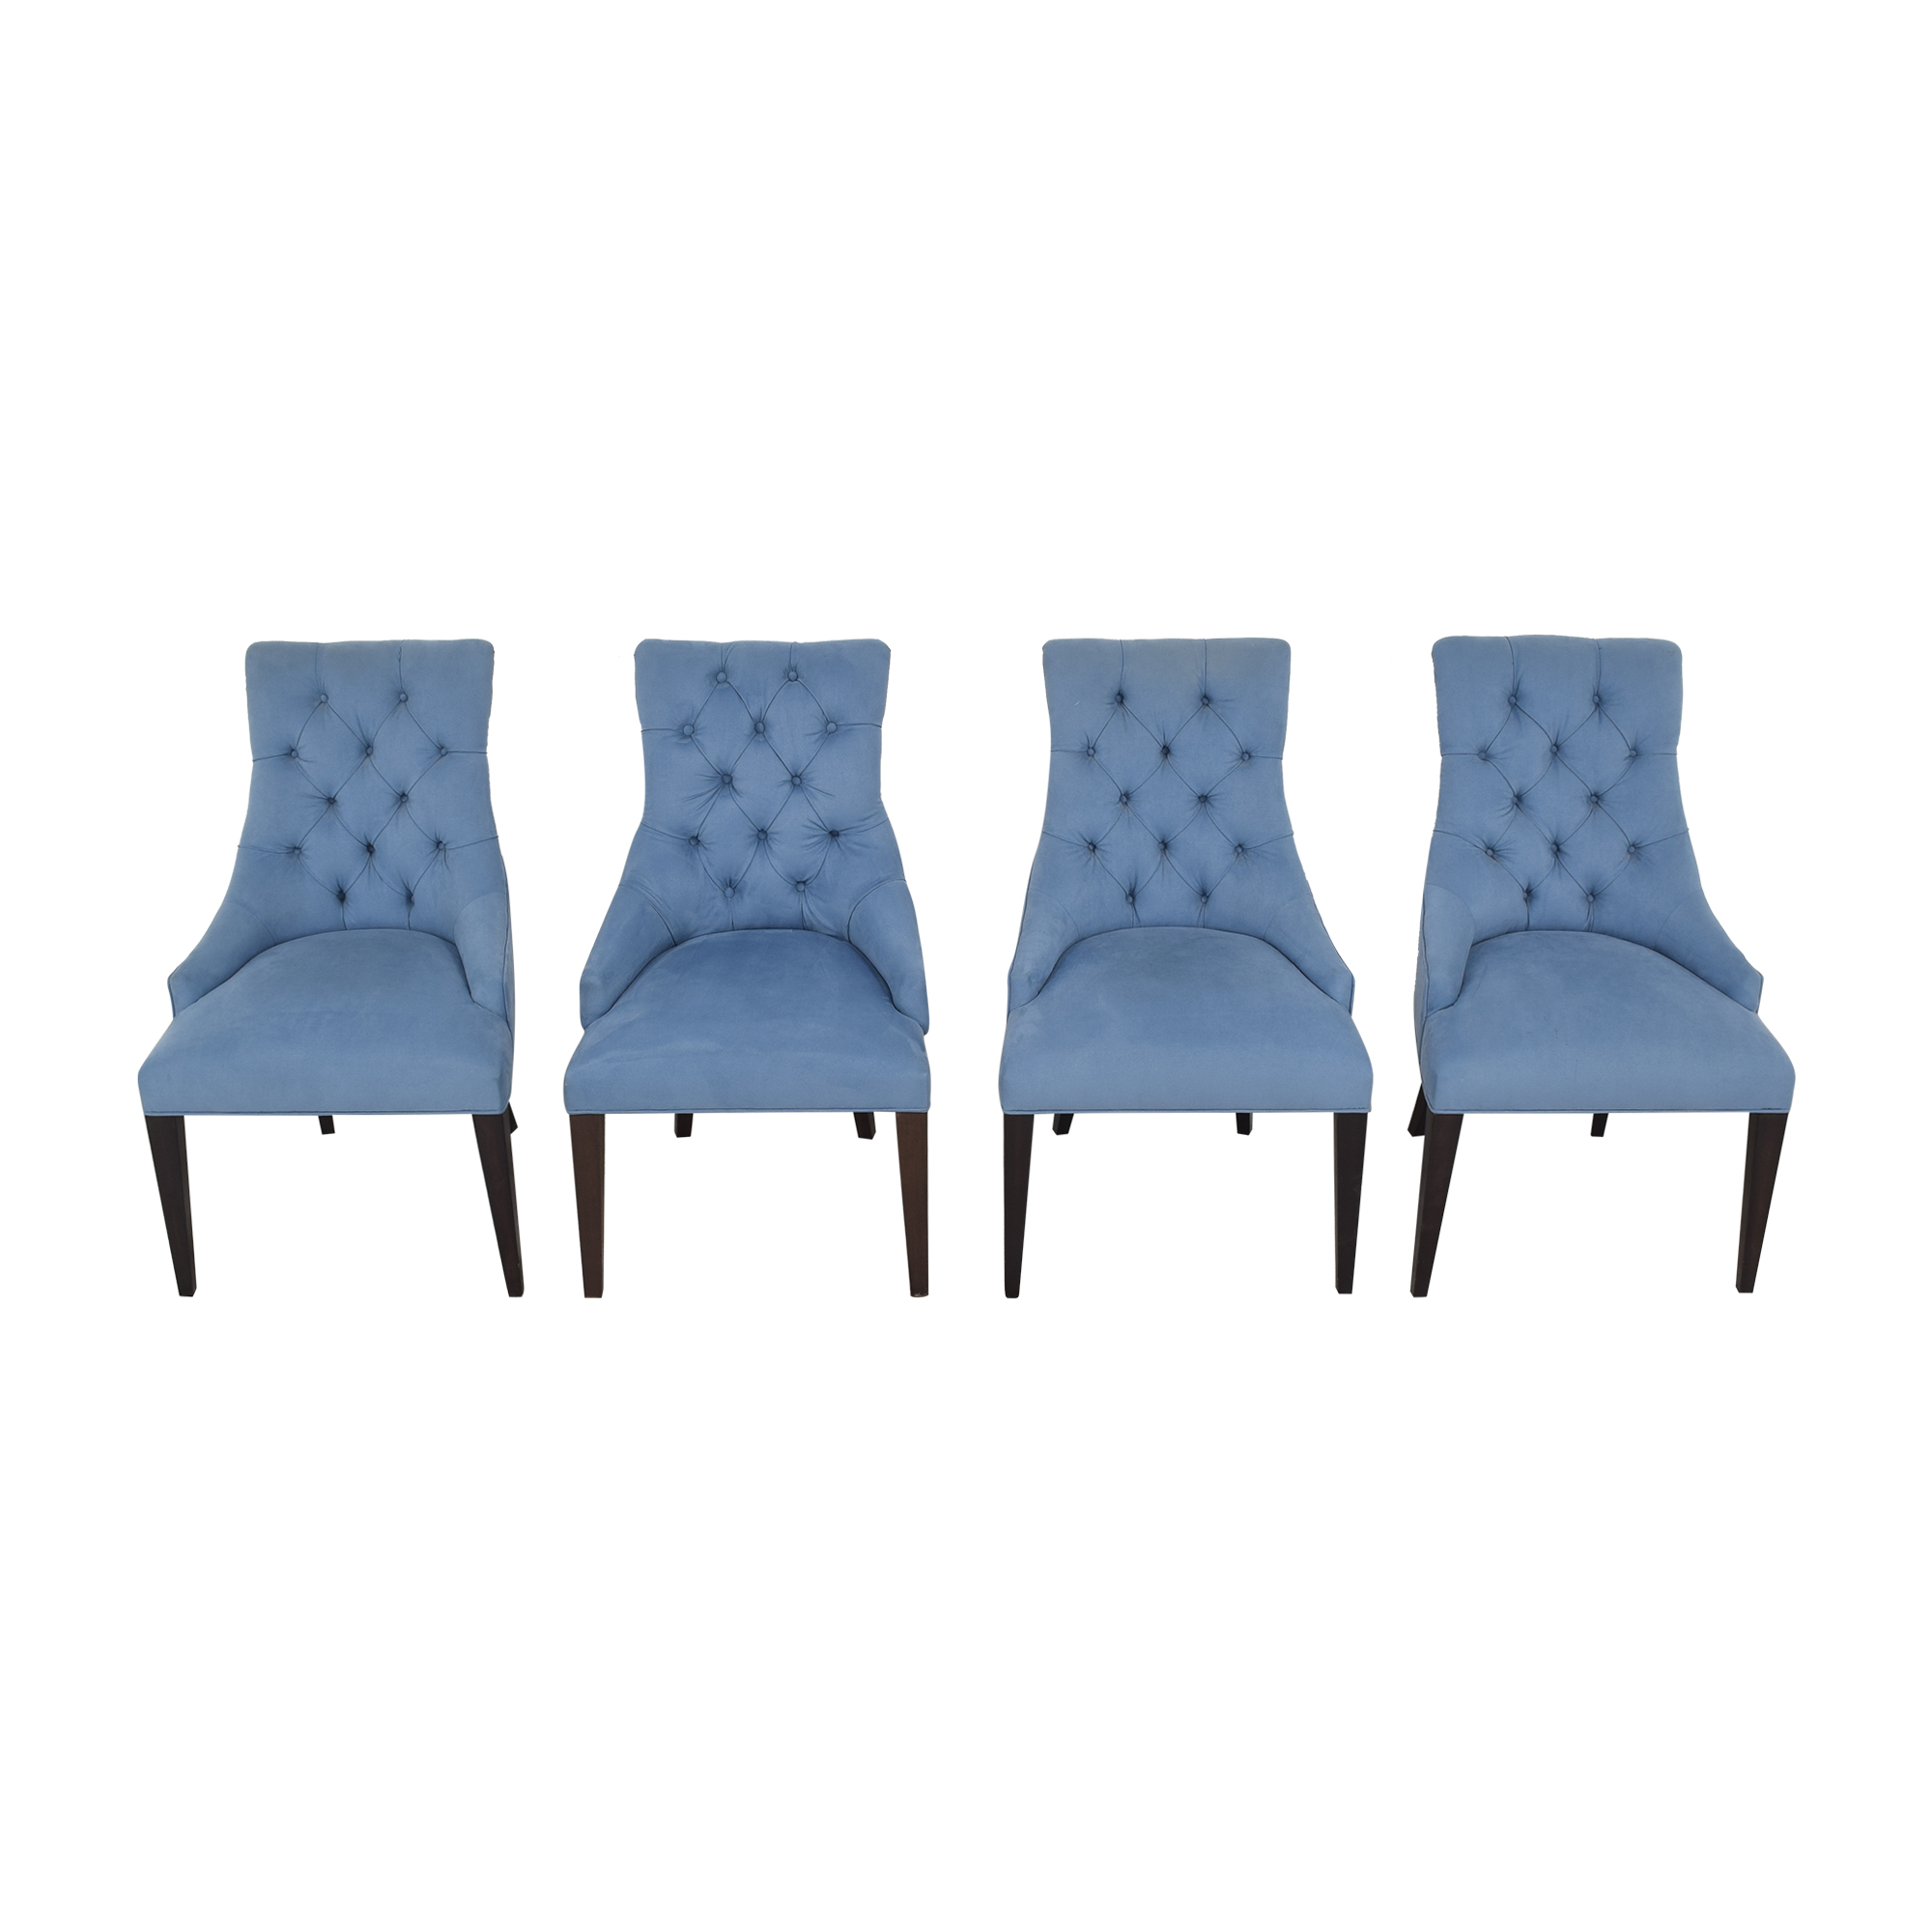 Tufted Back Dining Chairs on sale